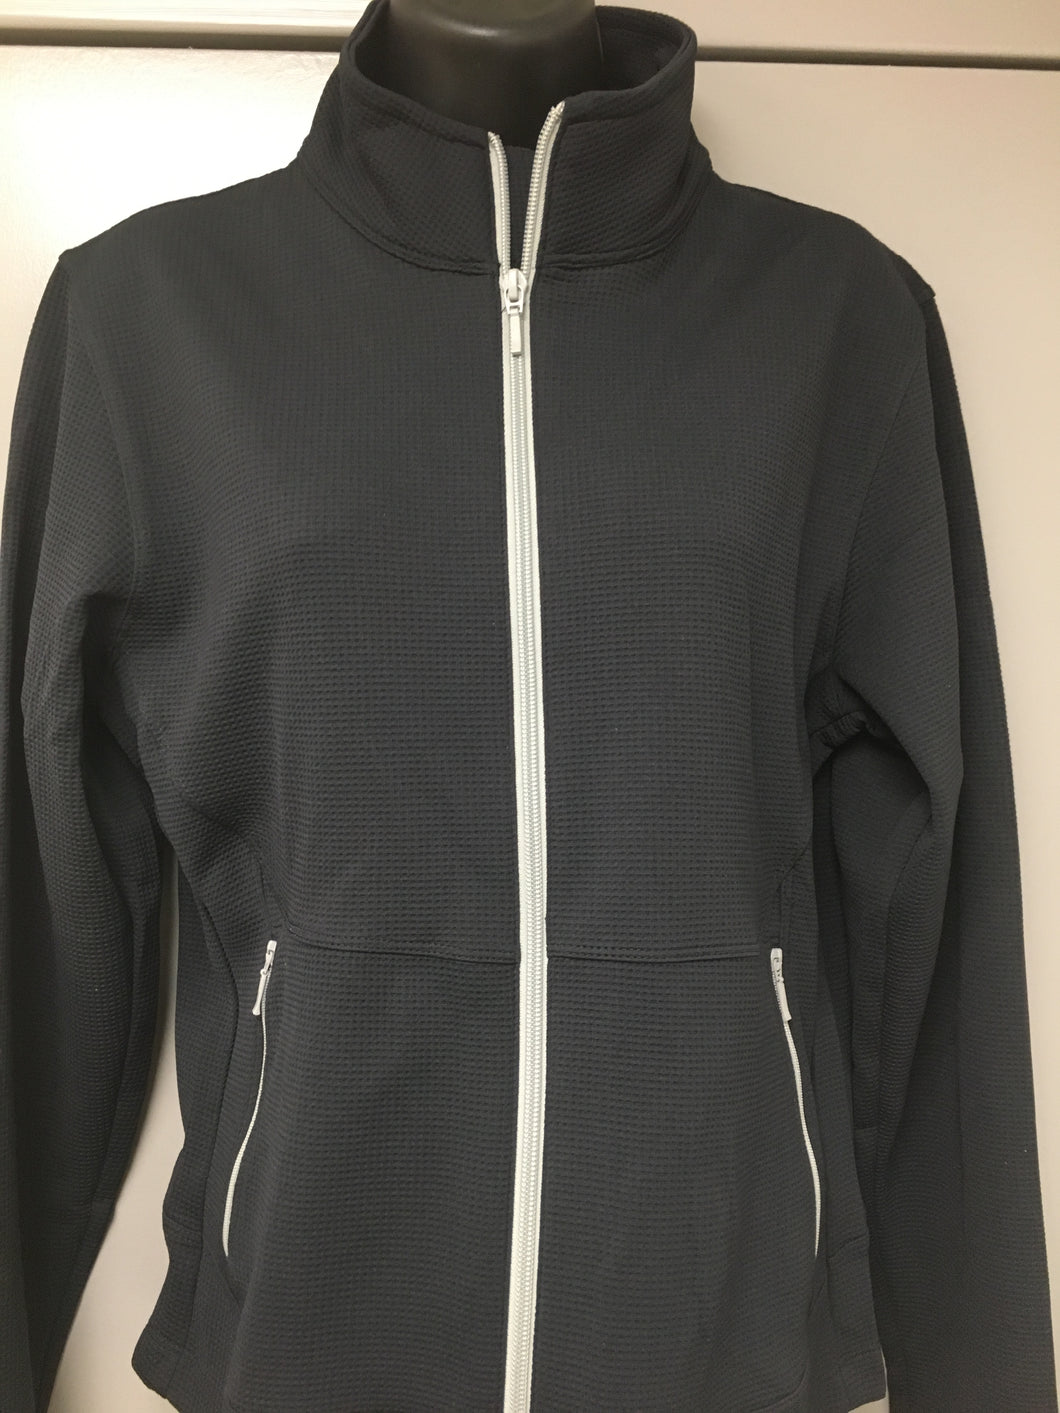 Men's Full Zip Syntrel Wicking Jacket - Logo on Back